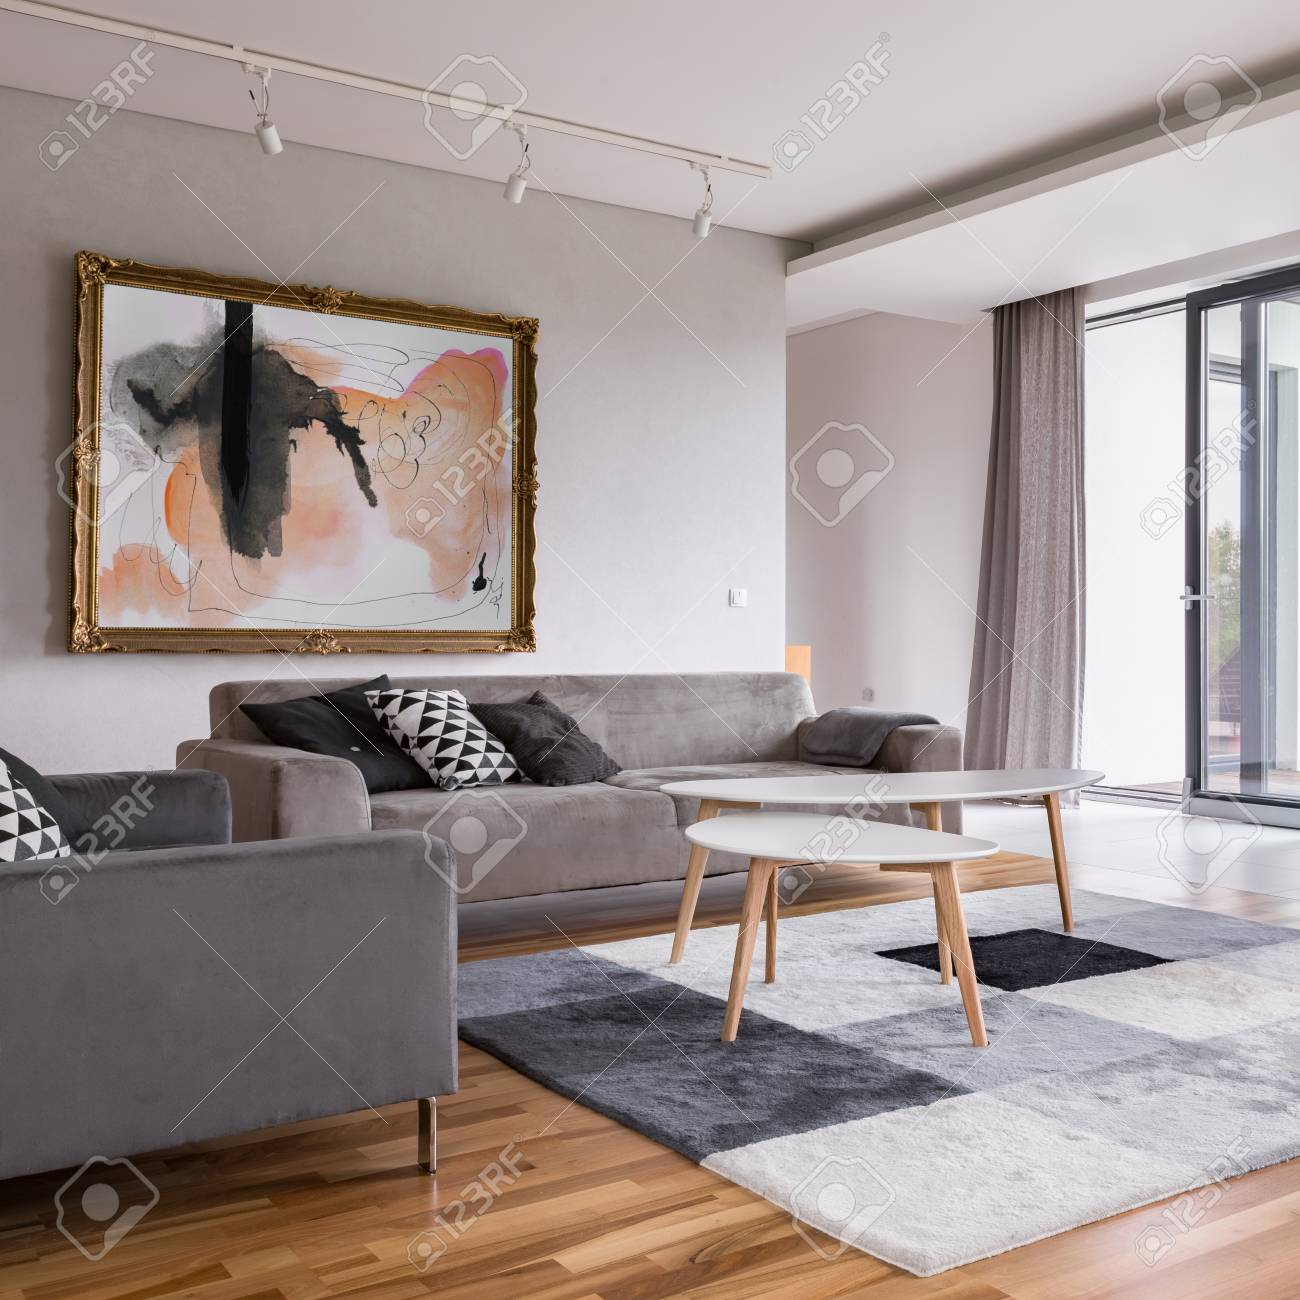 Square Frame Of Modern Living Room With Sofa Pattern Carpet Stock Photo Picture And Royalty Free Image Image 100872411